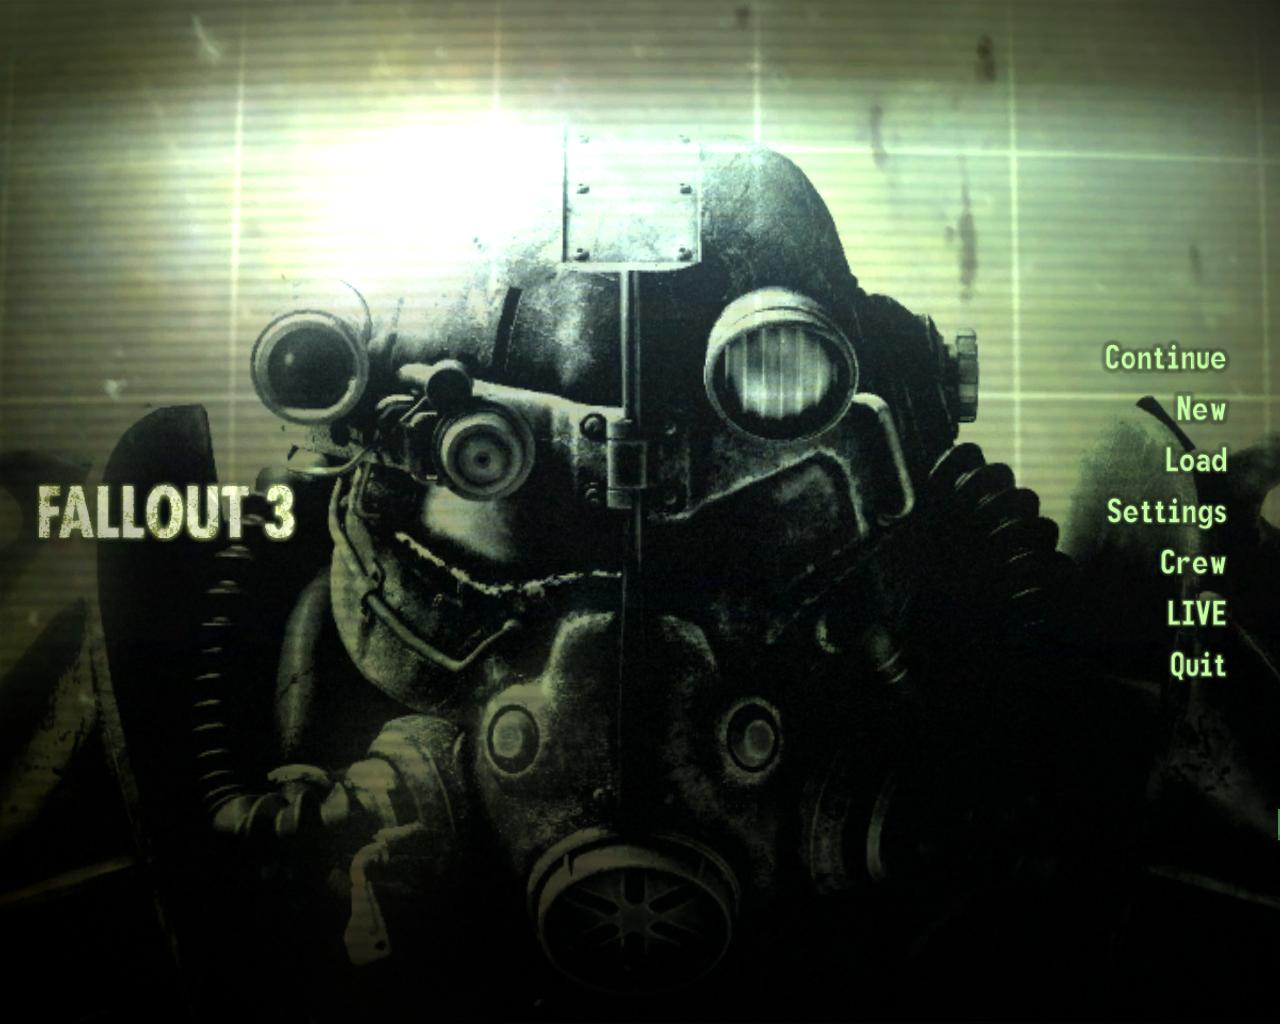 Wallpaper Brotherhood Of Steel Fallout 3 wallpaper hd 5151 hd 1280x1024